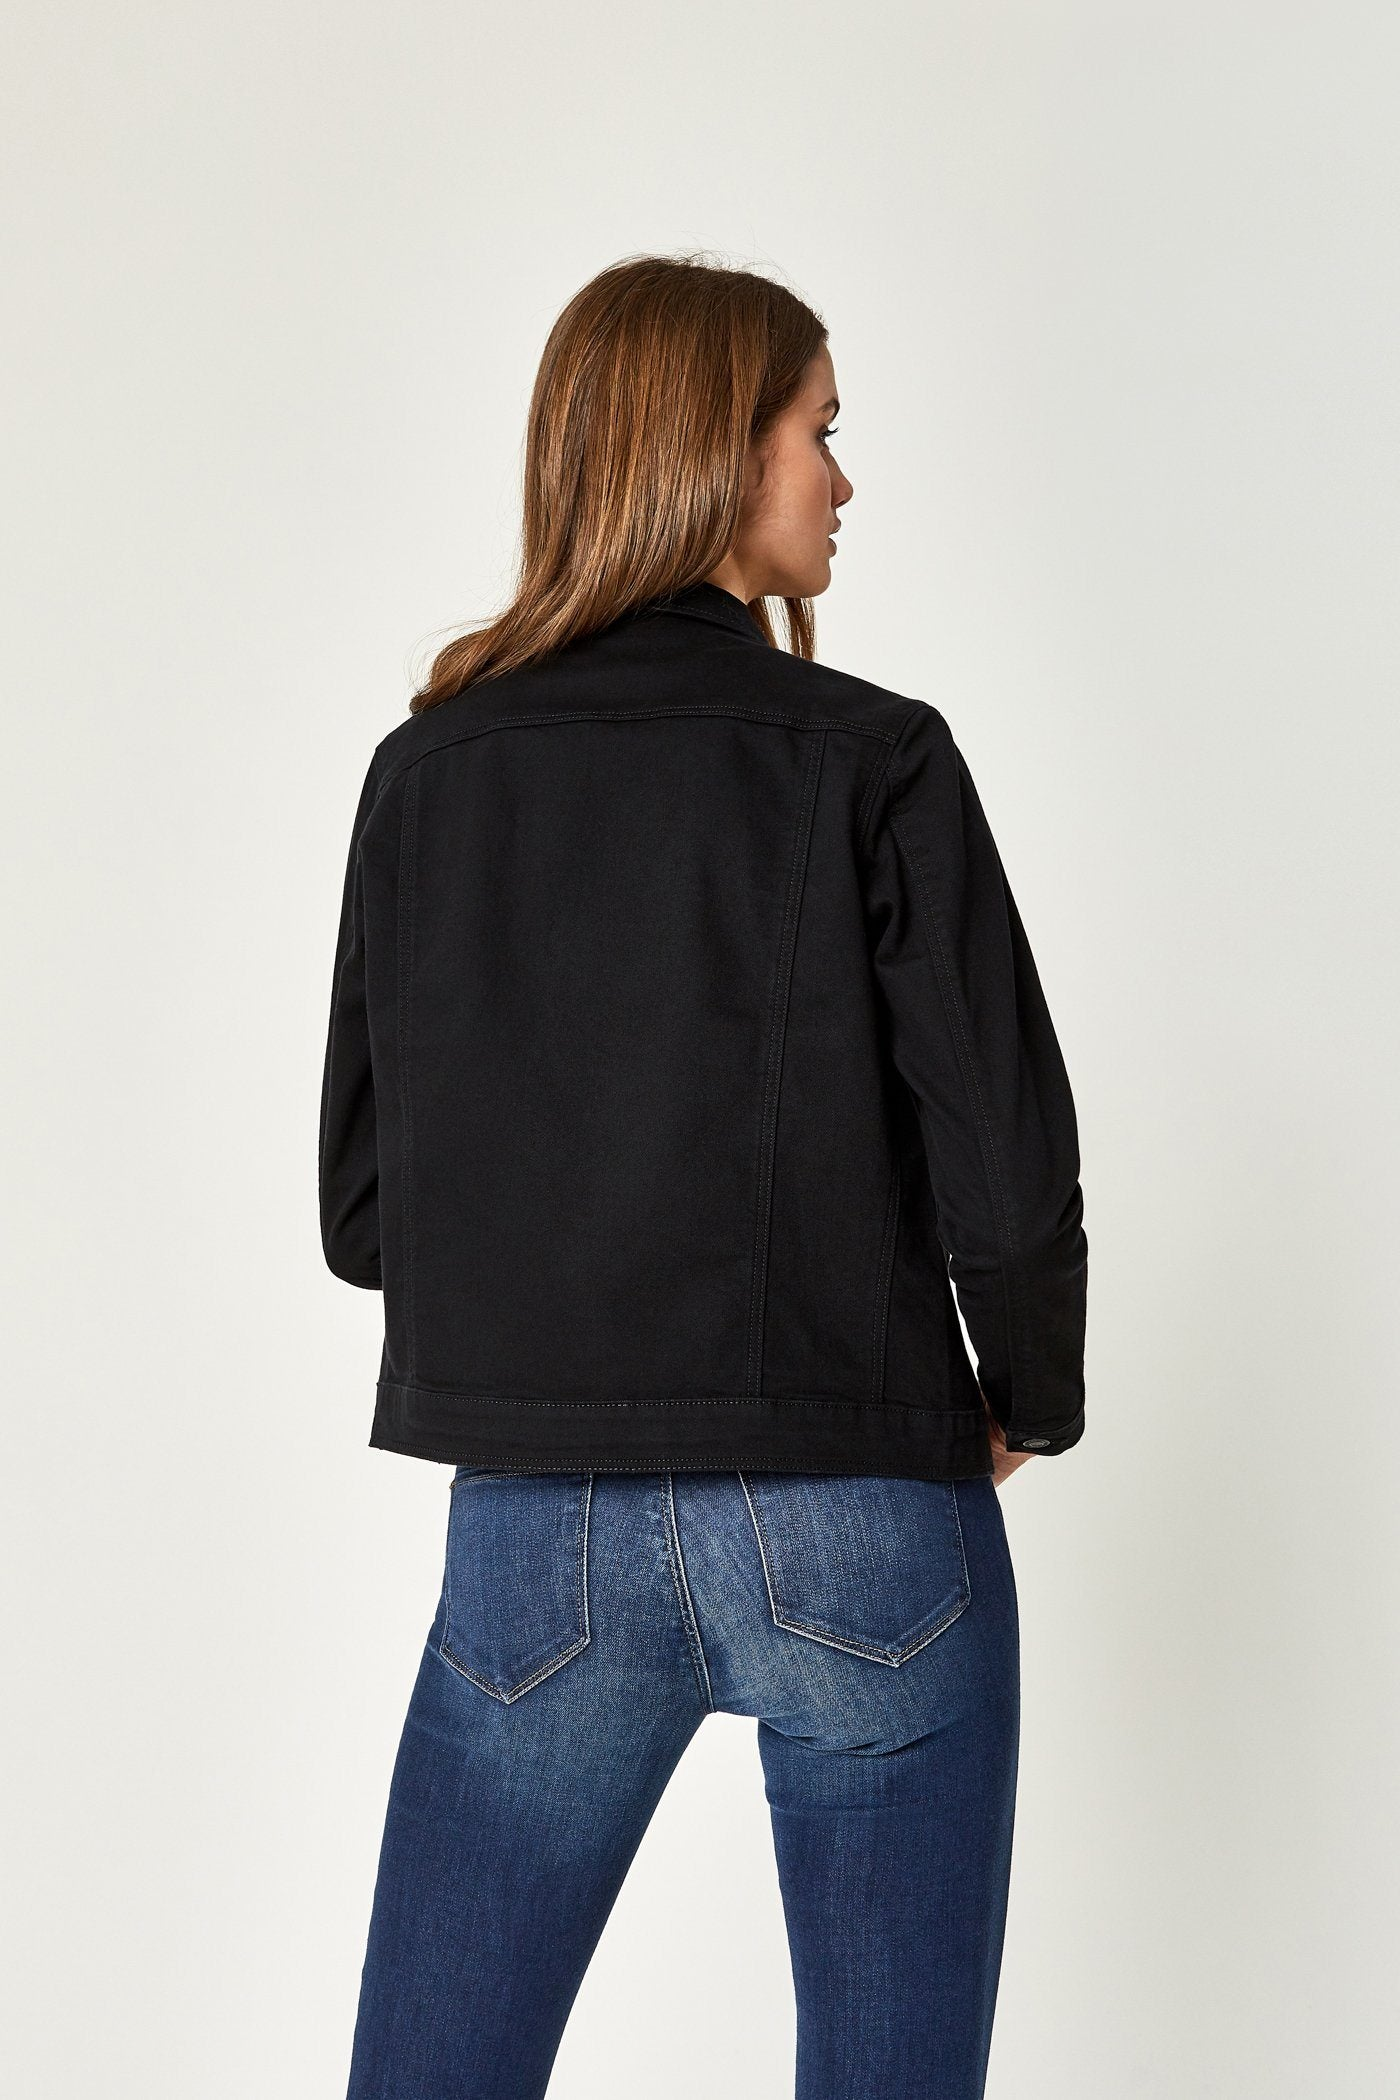 KATY JACKET IN BLACK COMFORT Image 5